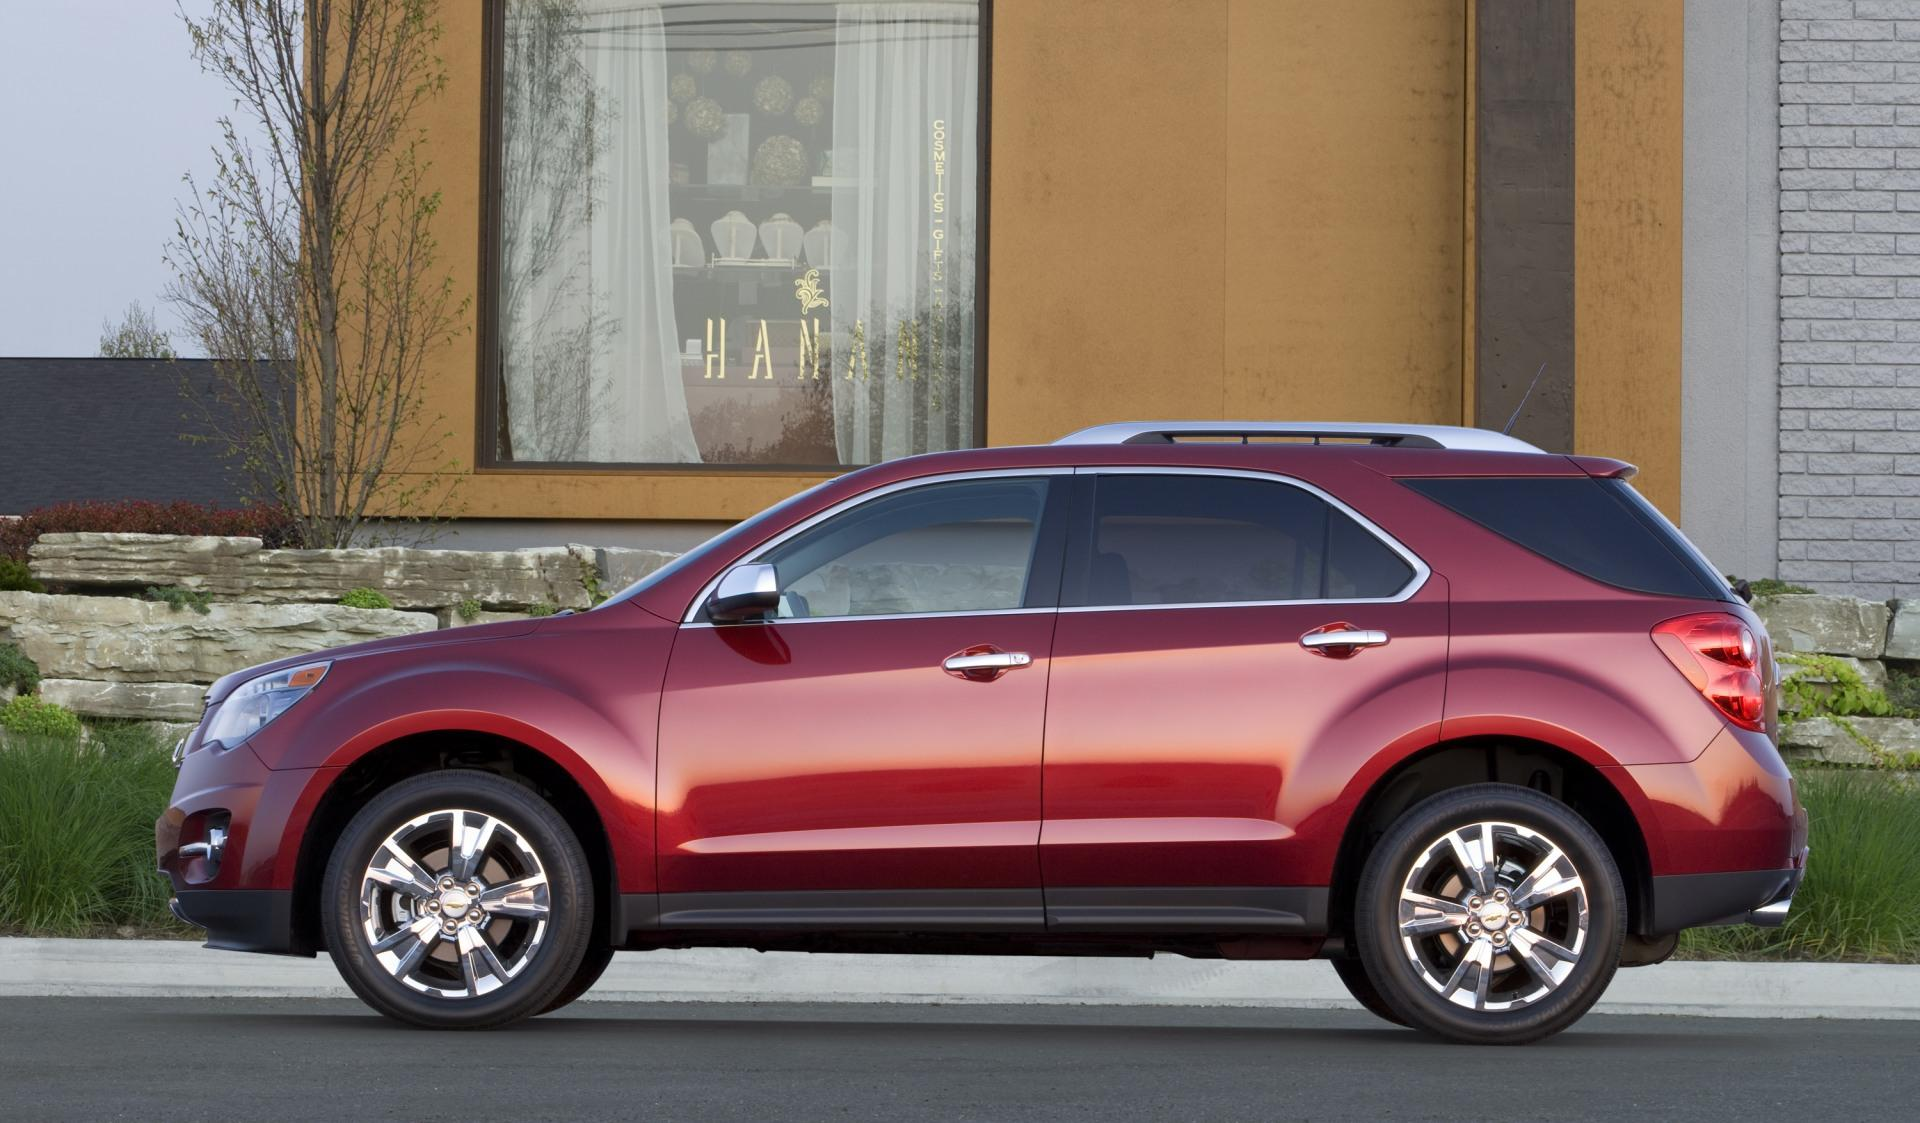 2011 Chevrolet Equinox News and Information